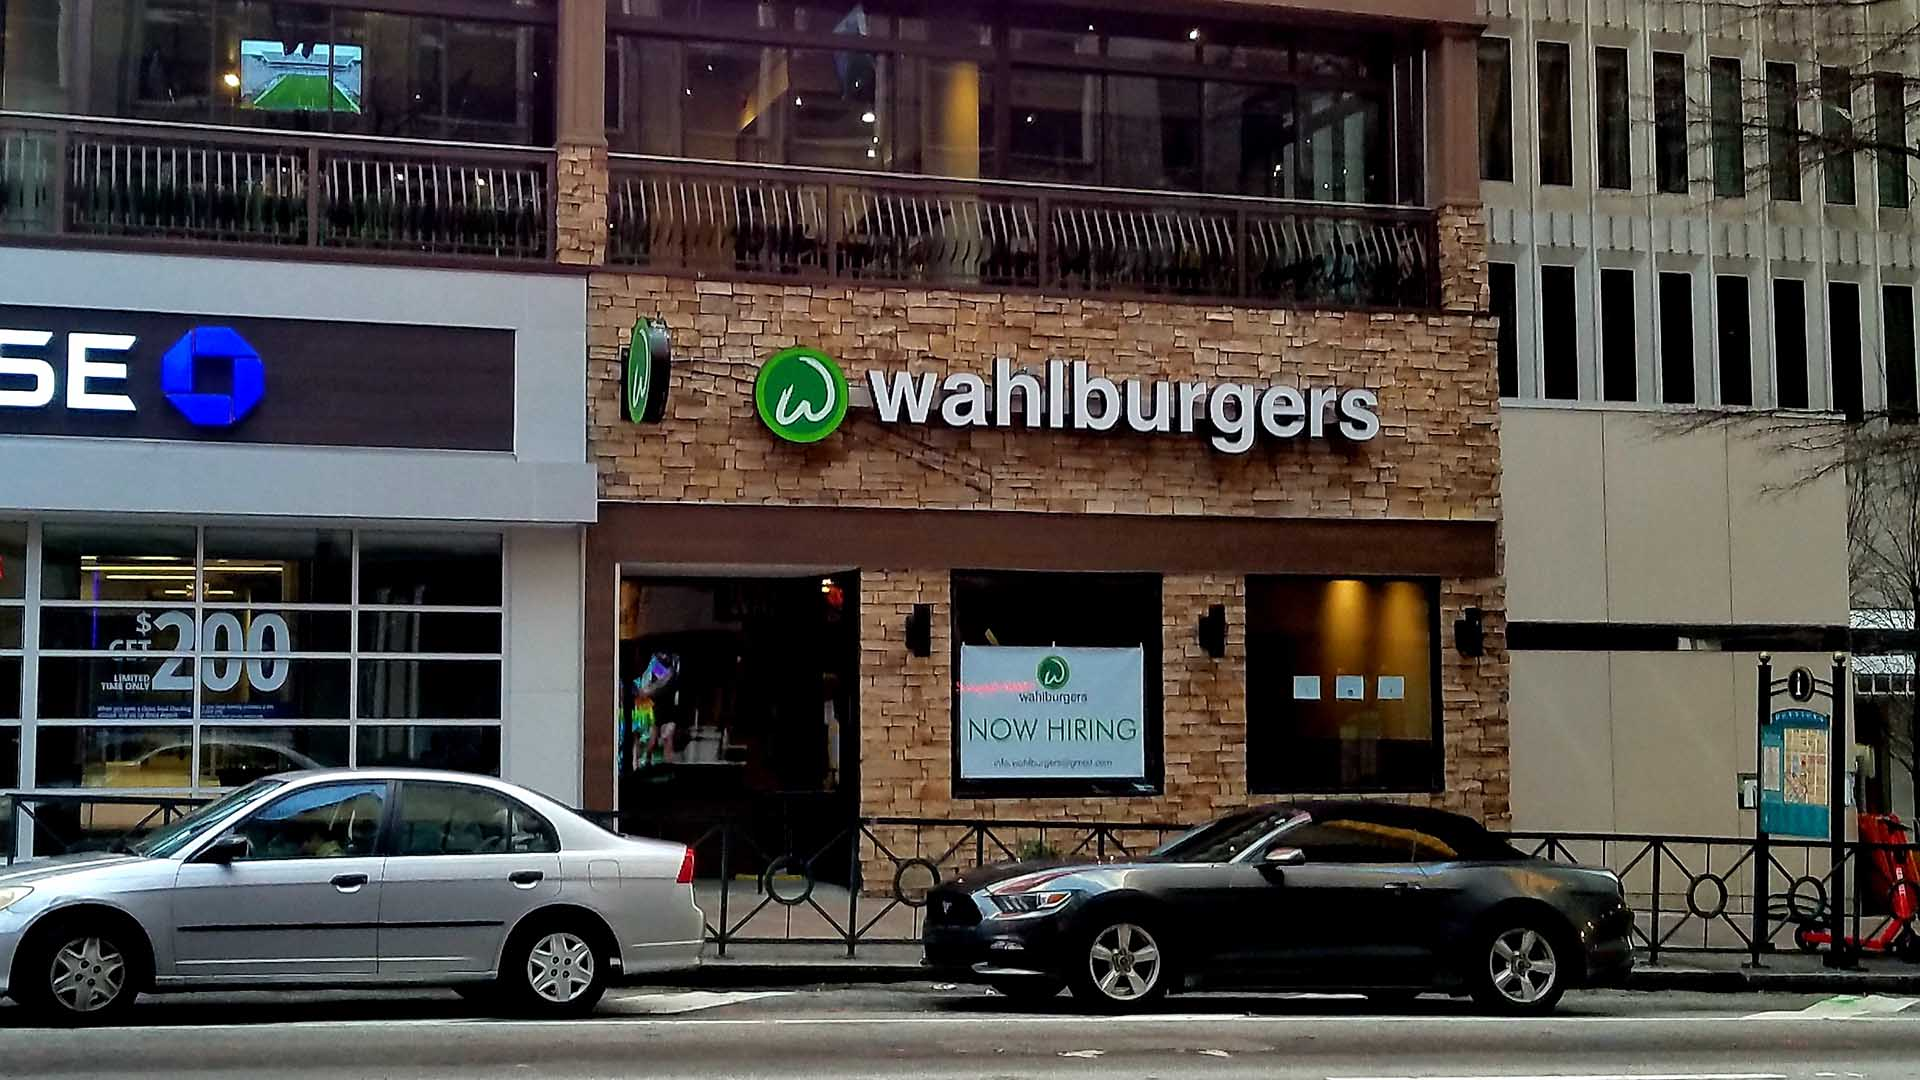 Mark Wahlberg Is Opening 20 Wahlburgers Restaurants Across Australia and New Zealand